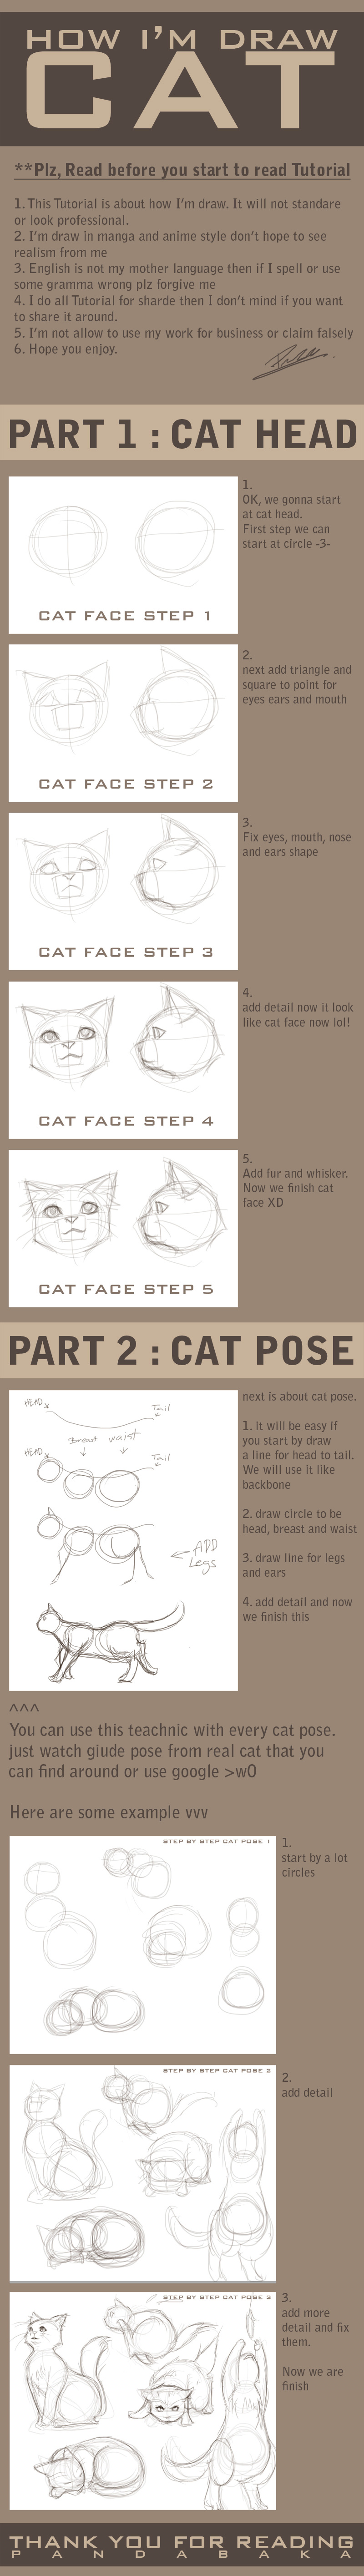 how I am draw cat by pandabaka